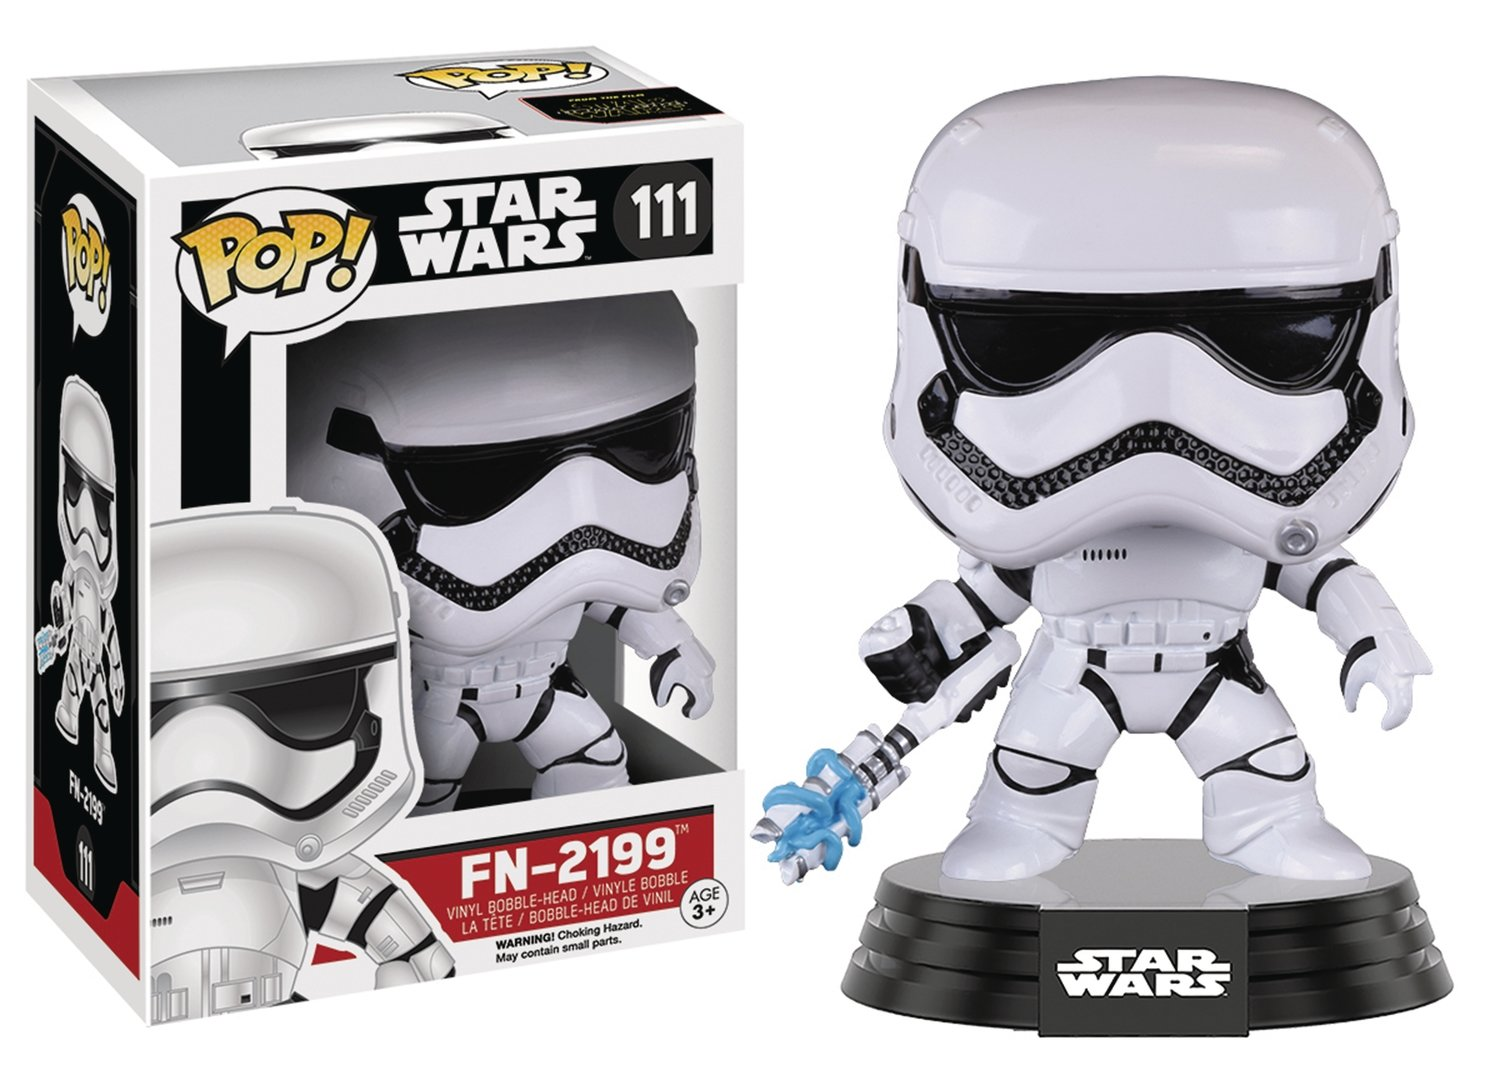 POP STAR WARS E7 FN-2199 TROOPER VINYL FIGURE